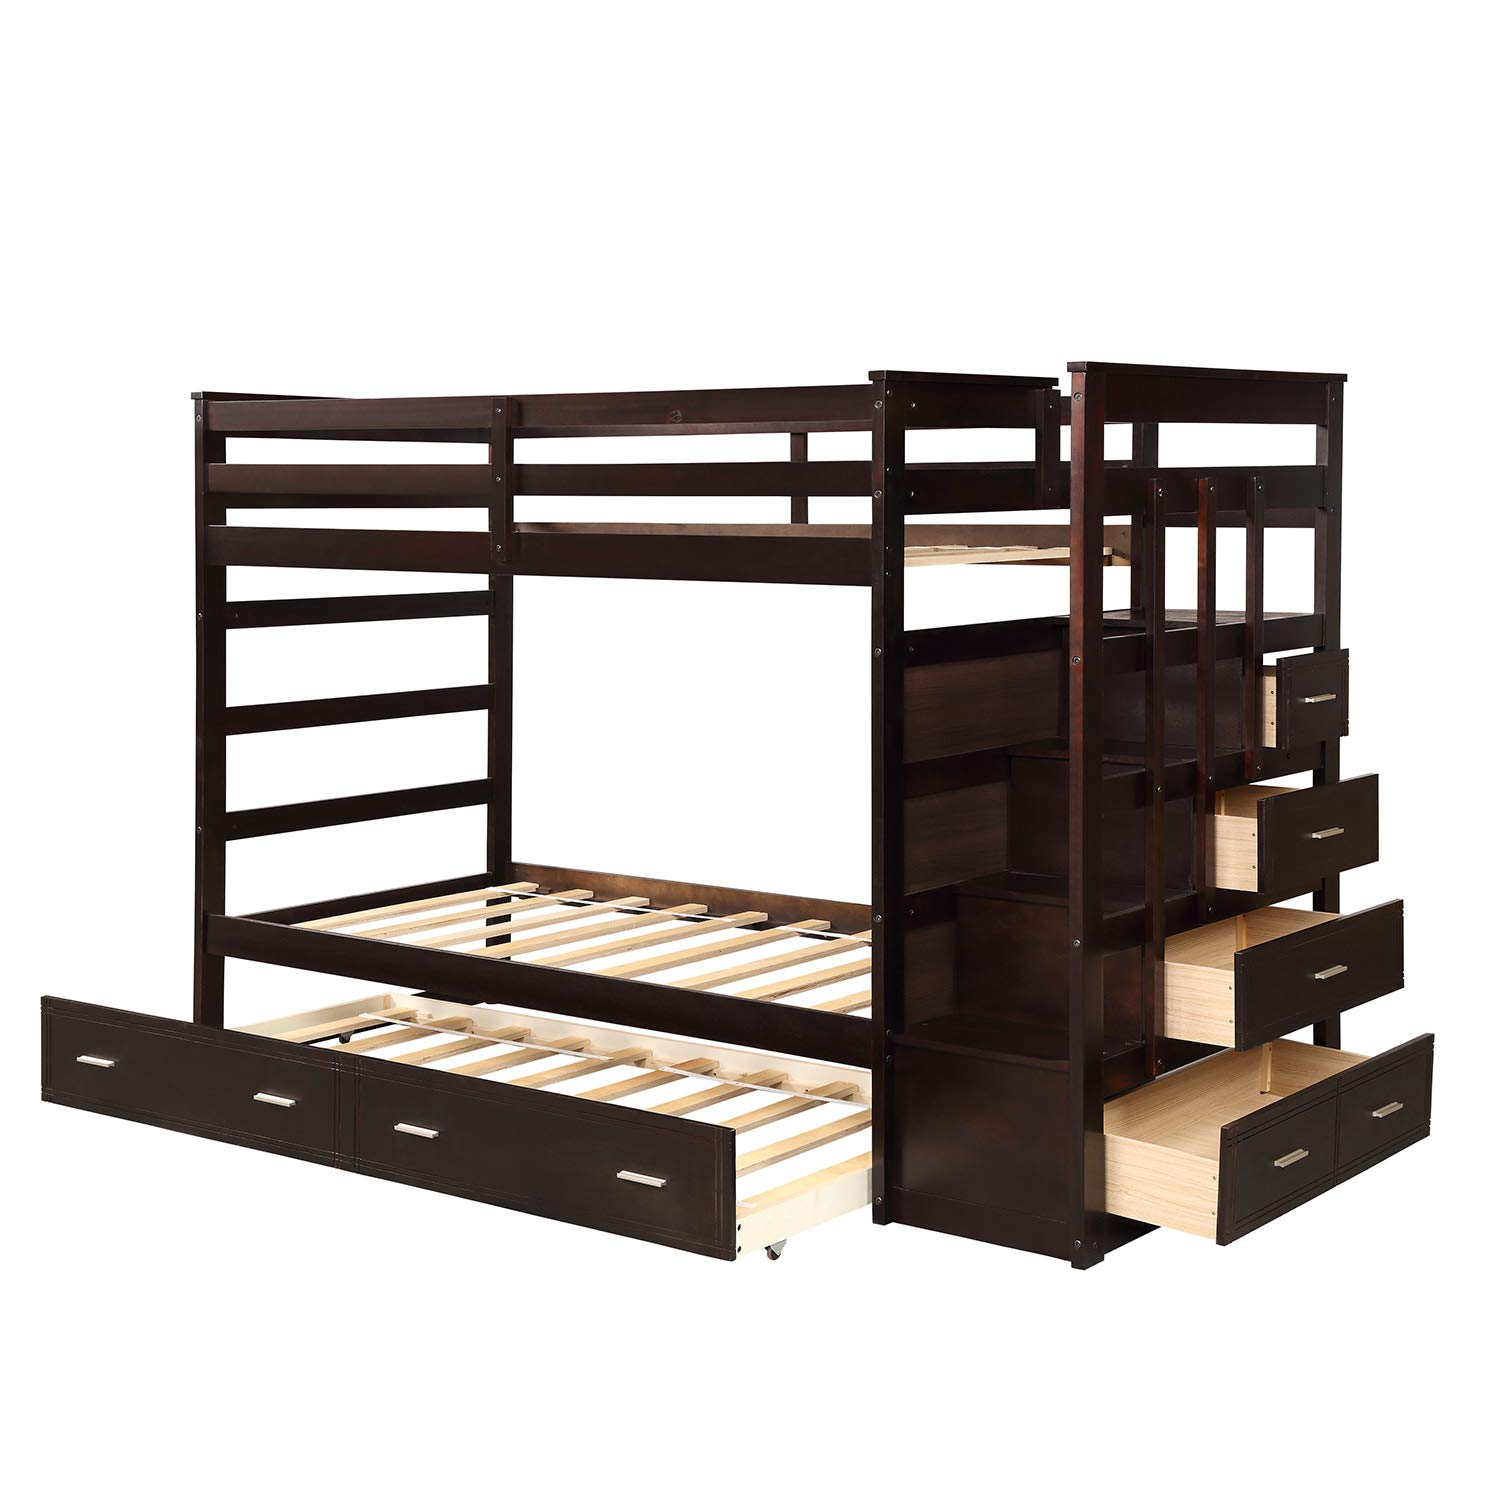 Wood Bunk Bed for Kids, ViYoung Hardwood Twin Over Twin Bunk Bed Frame with Trundle and Staircase Esprsso Bunk